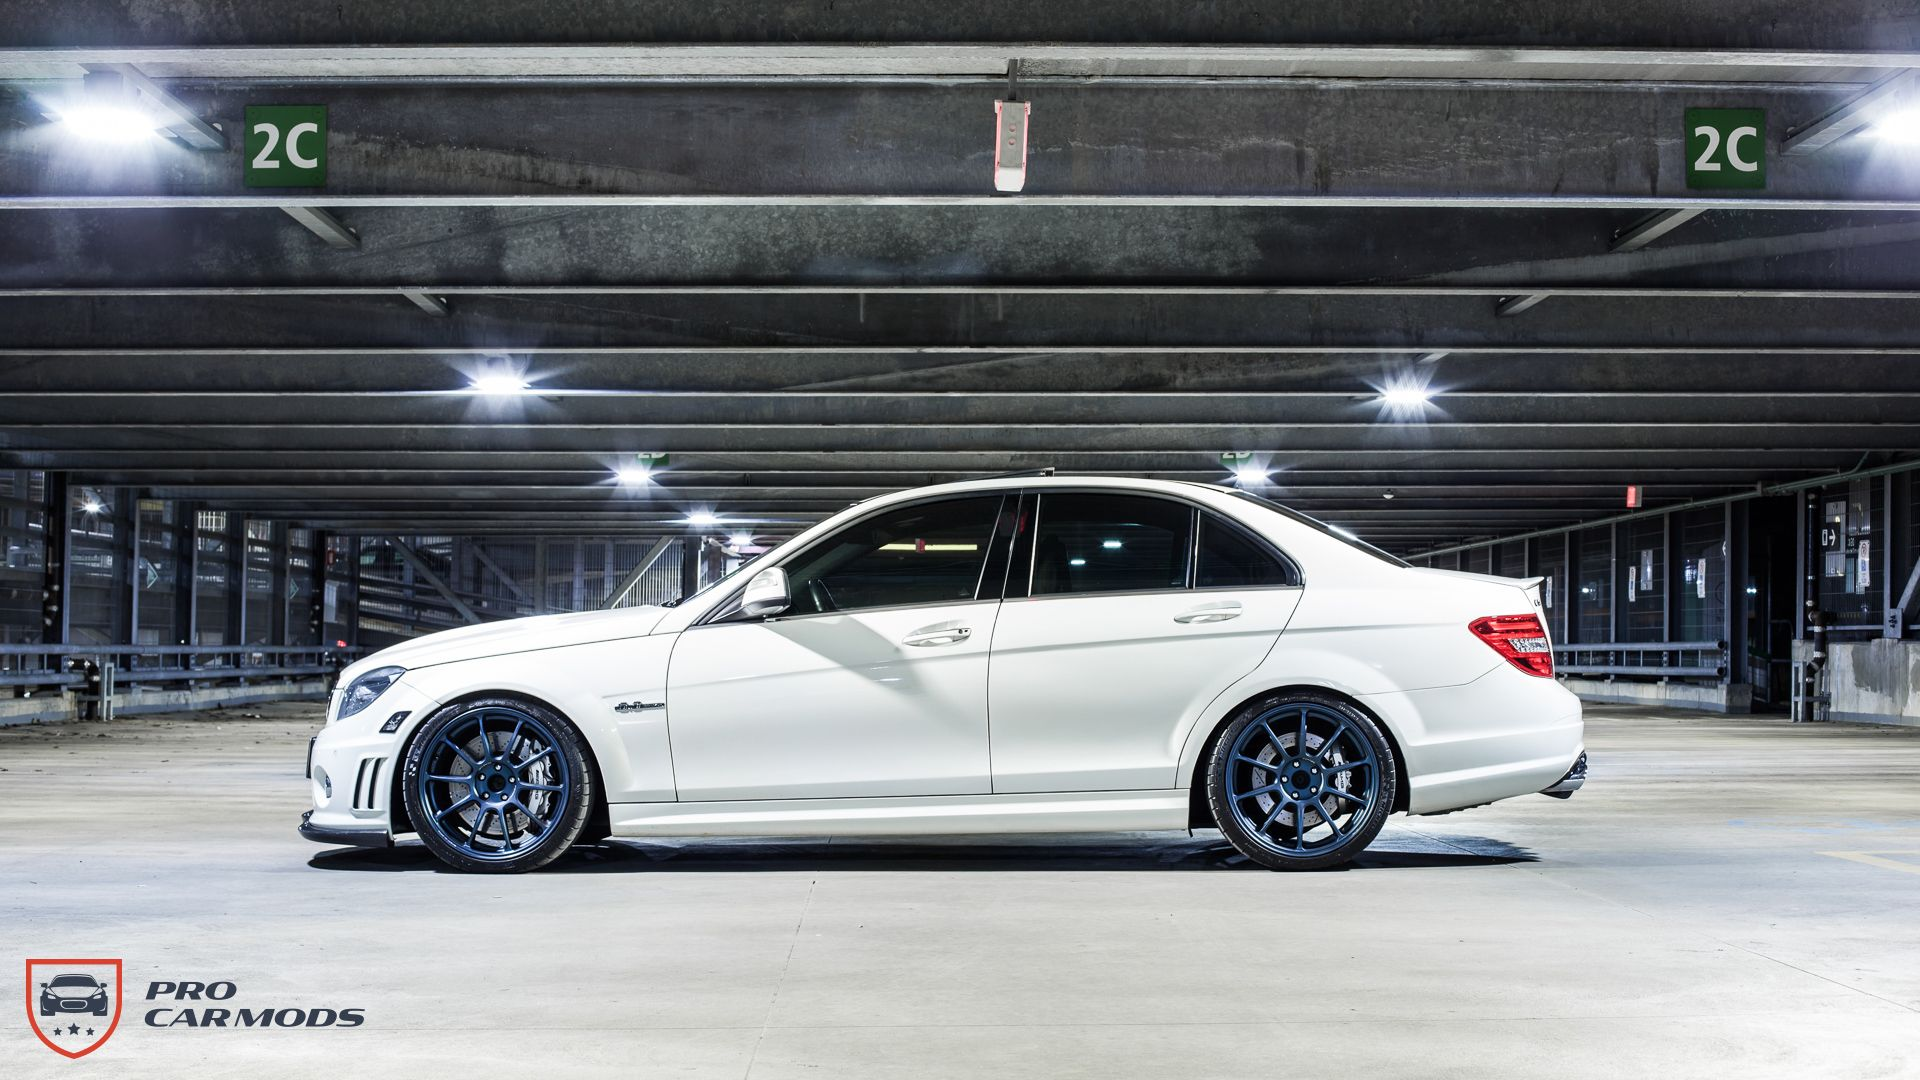 Modified Mercedes C63 Amg Slicker Than Your Average 2009 C63 Amg